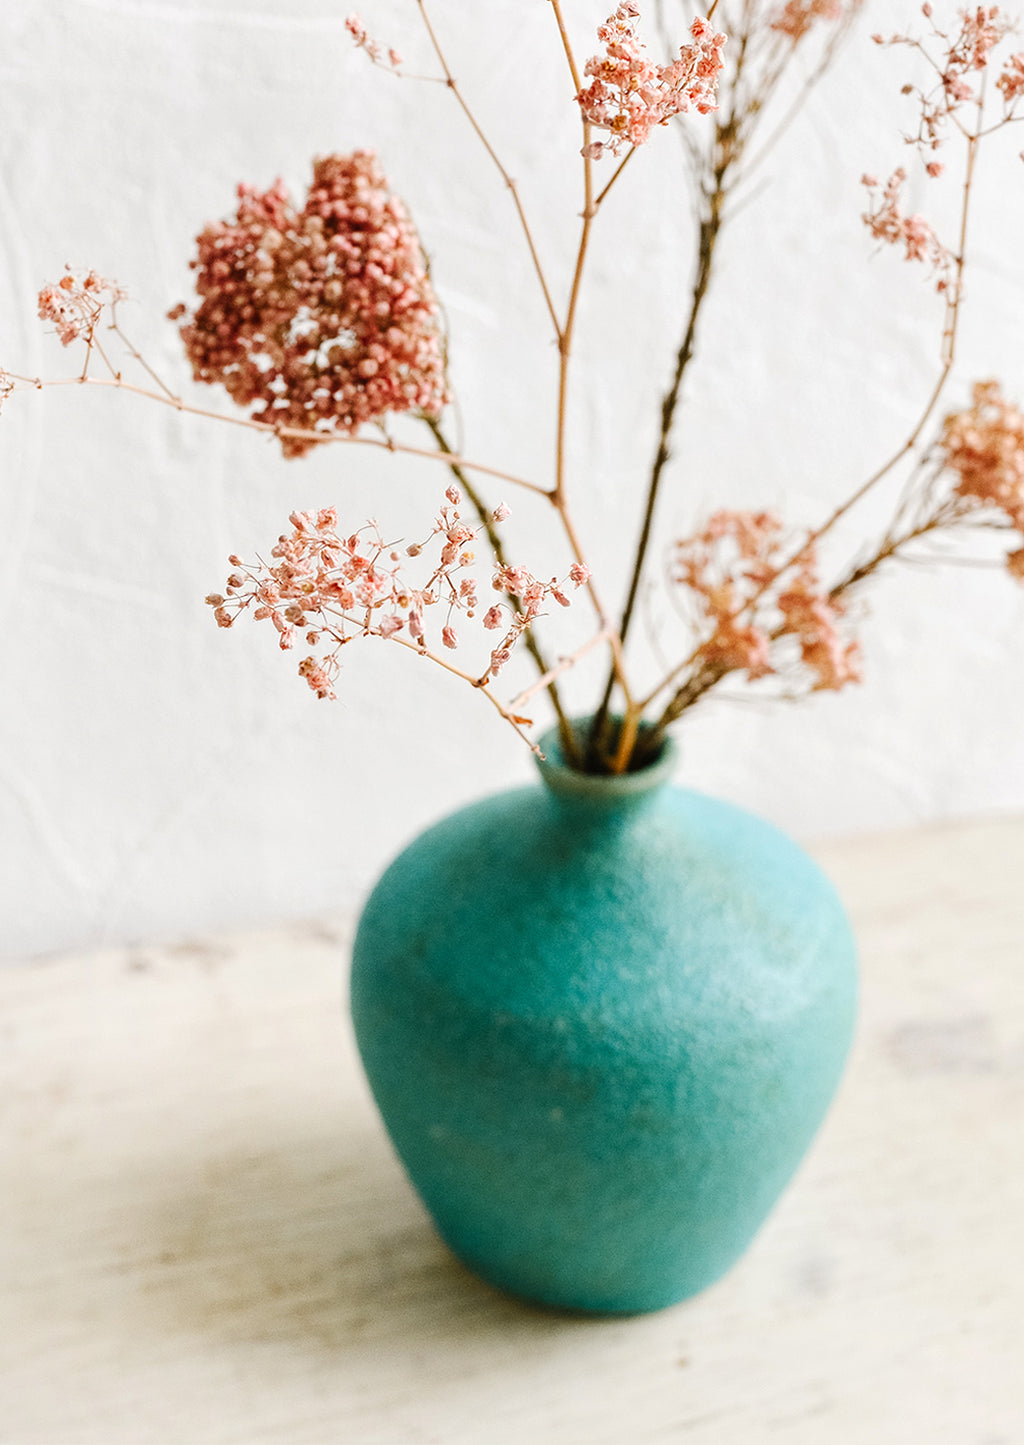 2: A textured turquoise ceramic vase with dried pink flowers inside.